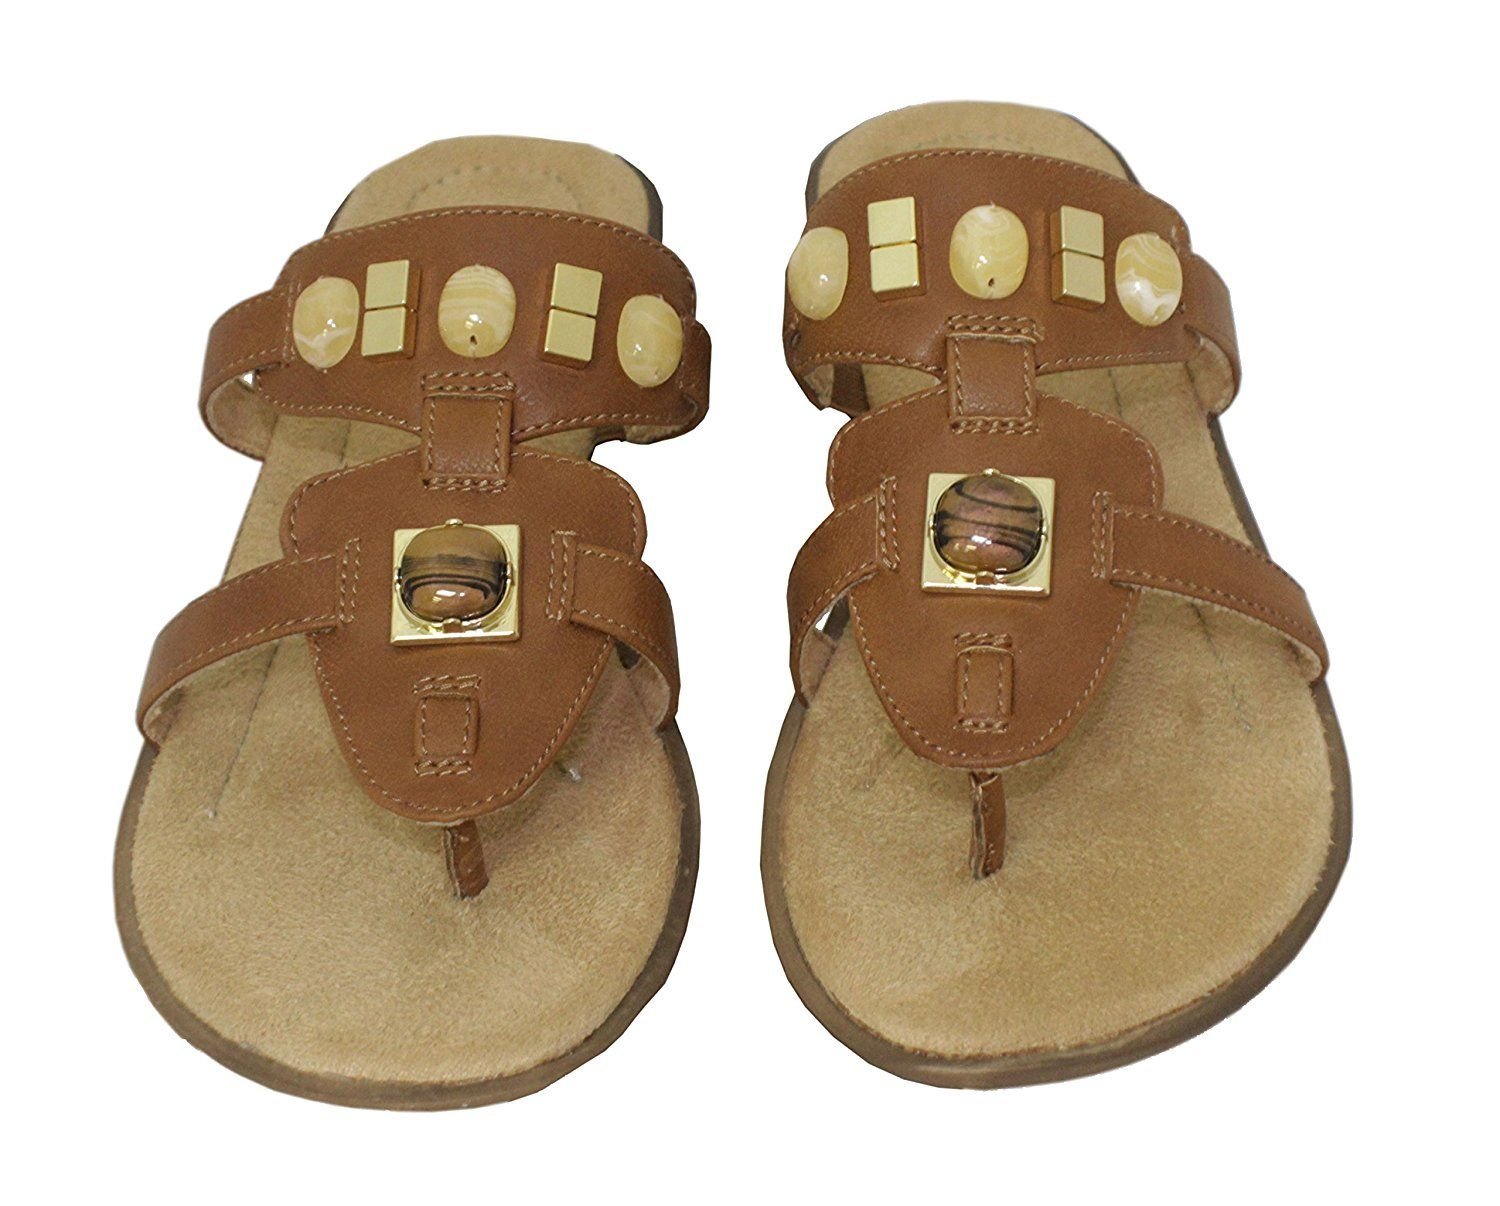 https://www.amazon.com/Naturalizer-Womens-Jamelia-Sandal-Brown/dp/B01LVXUWE9/ref=sr_1_1?s=apparel